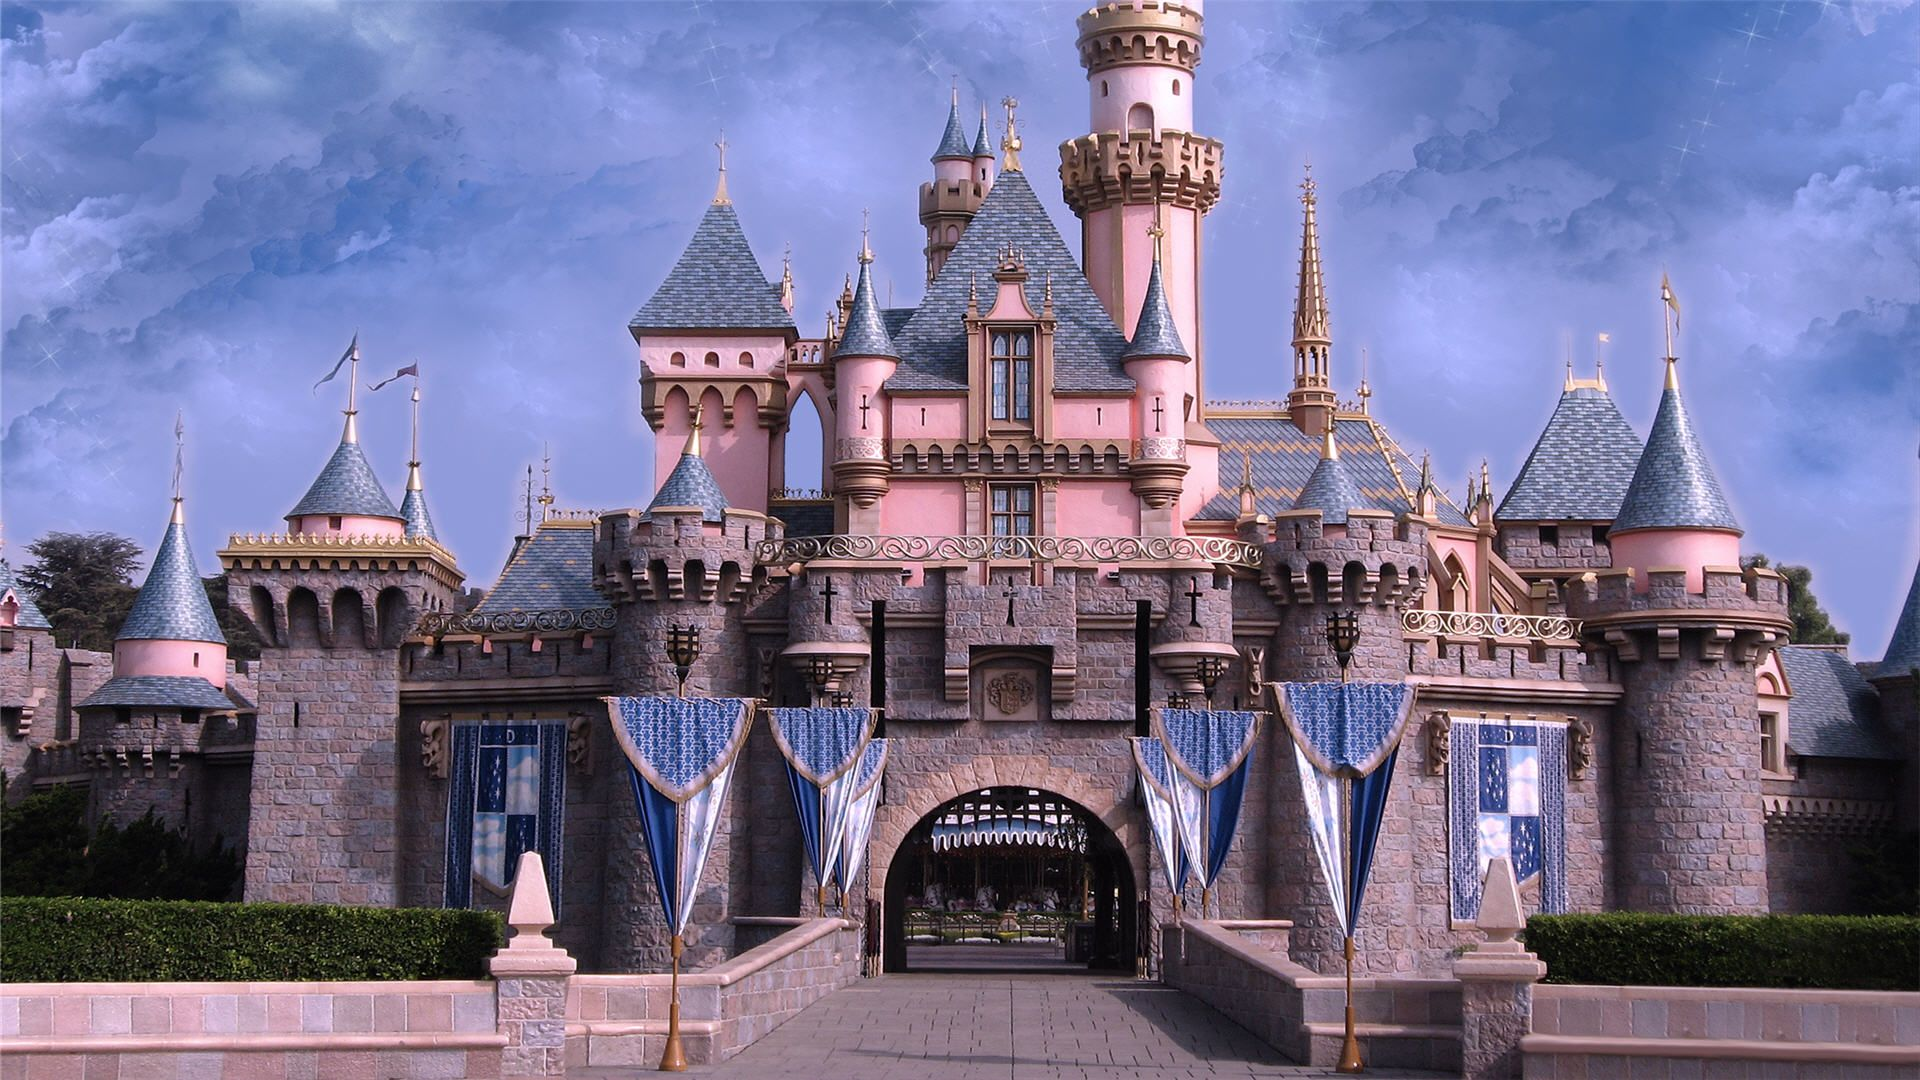 castle images collection for free download | hd wallpapers